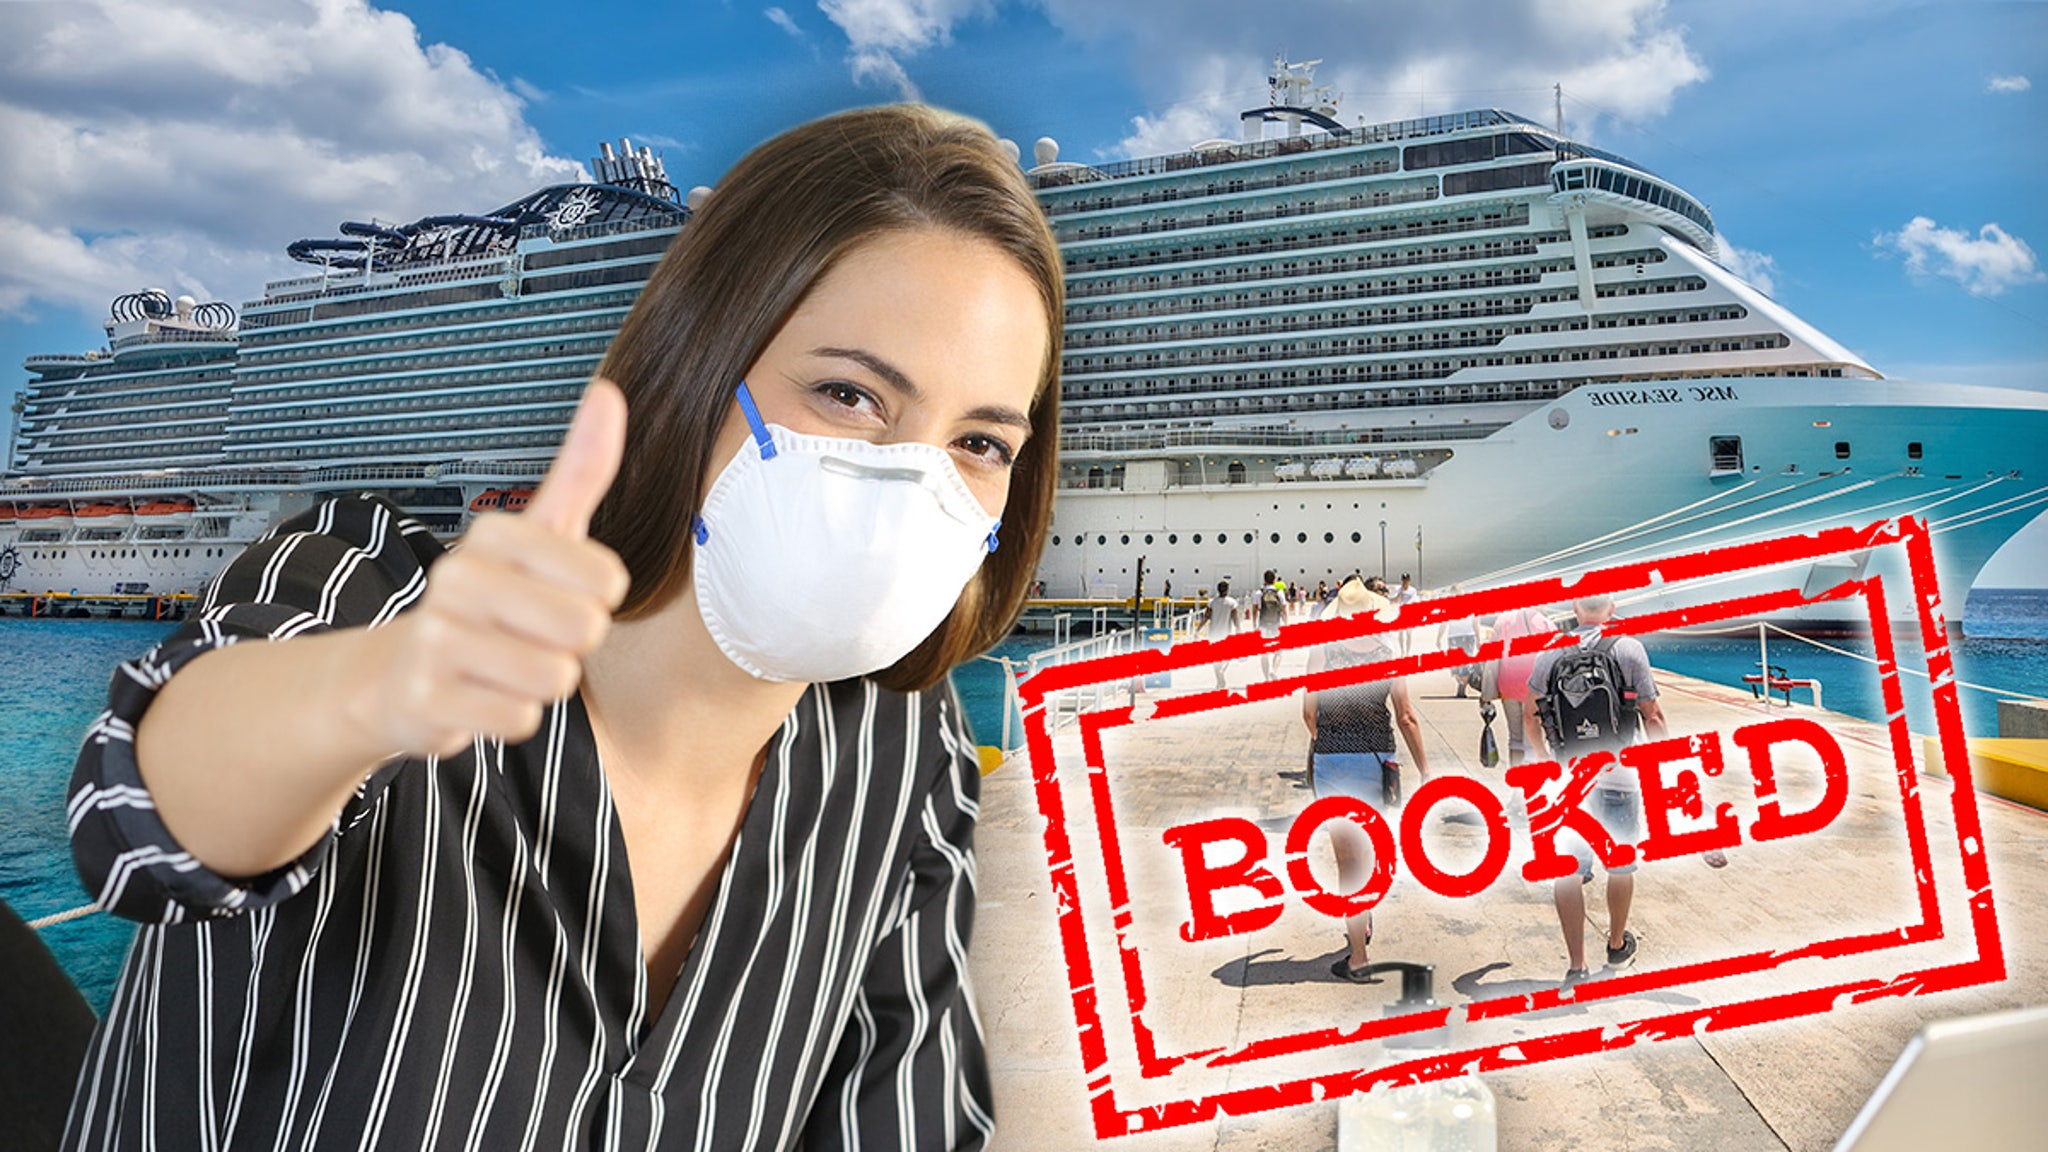 Coronavirus Travel Bookings Back On the Rise ... It's a Vaccine Boost!!!